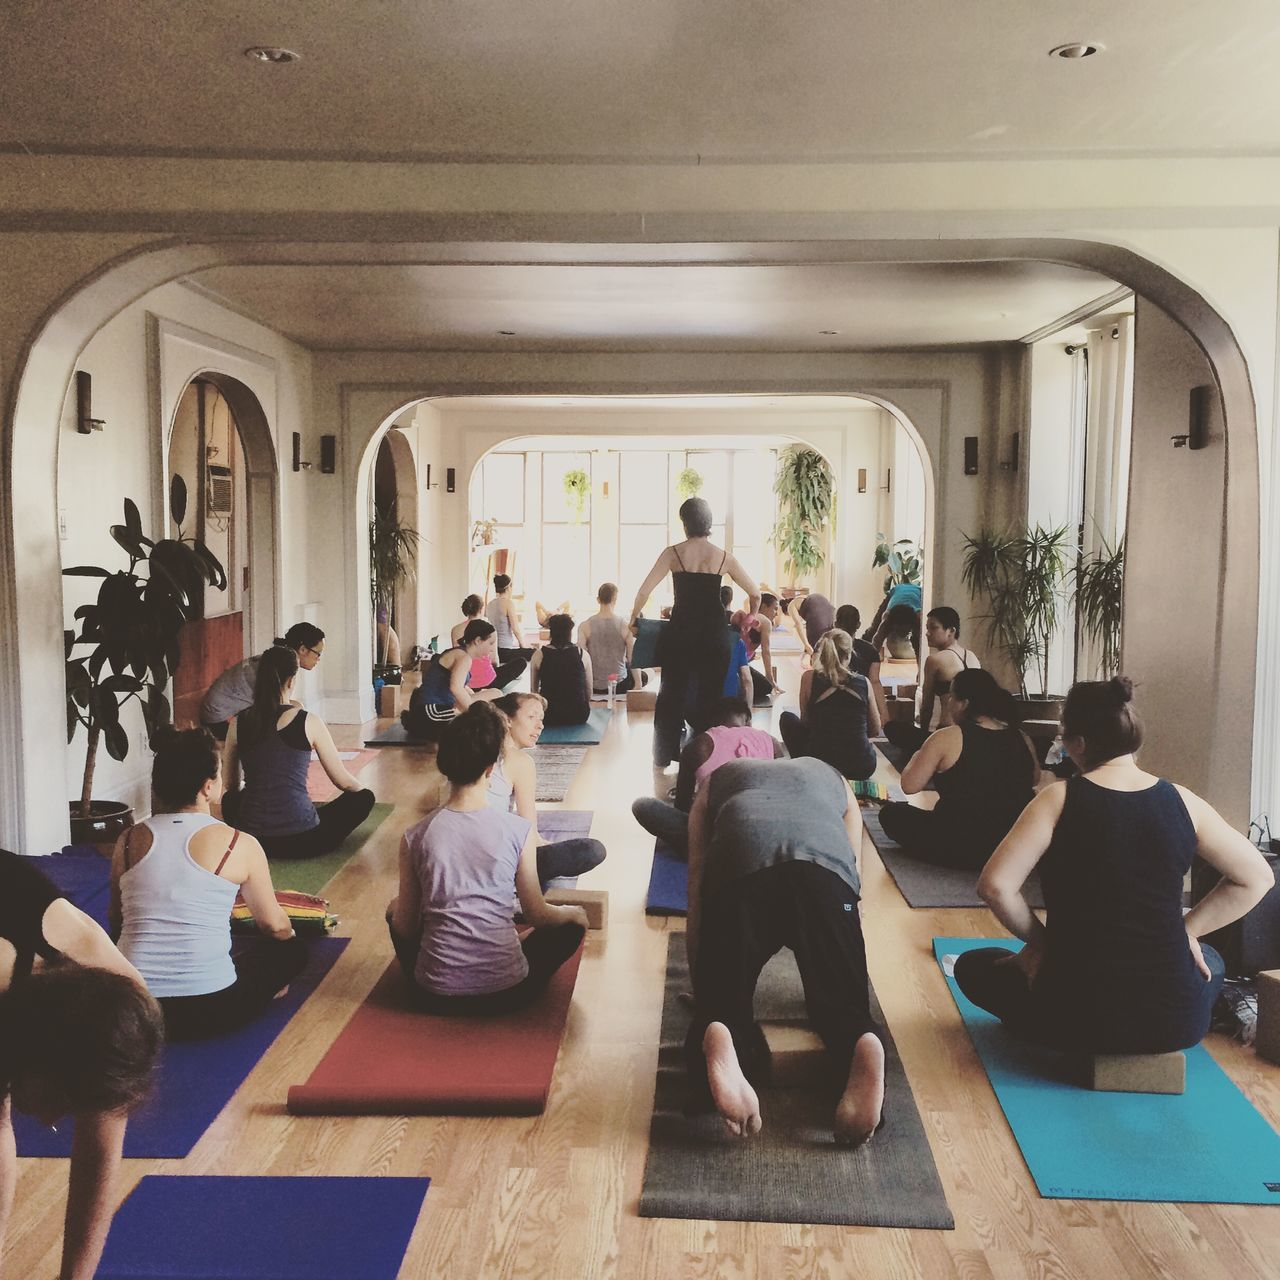 Namaste Yoga New York Exercise Sweating Interior Views